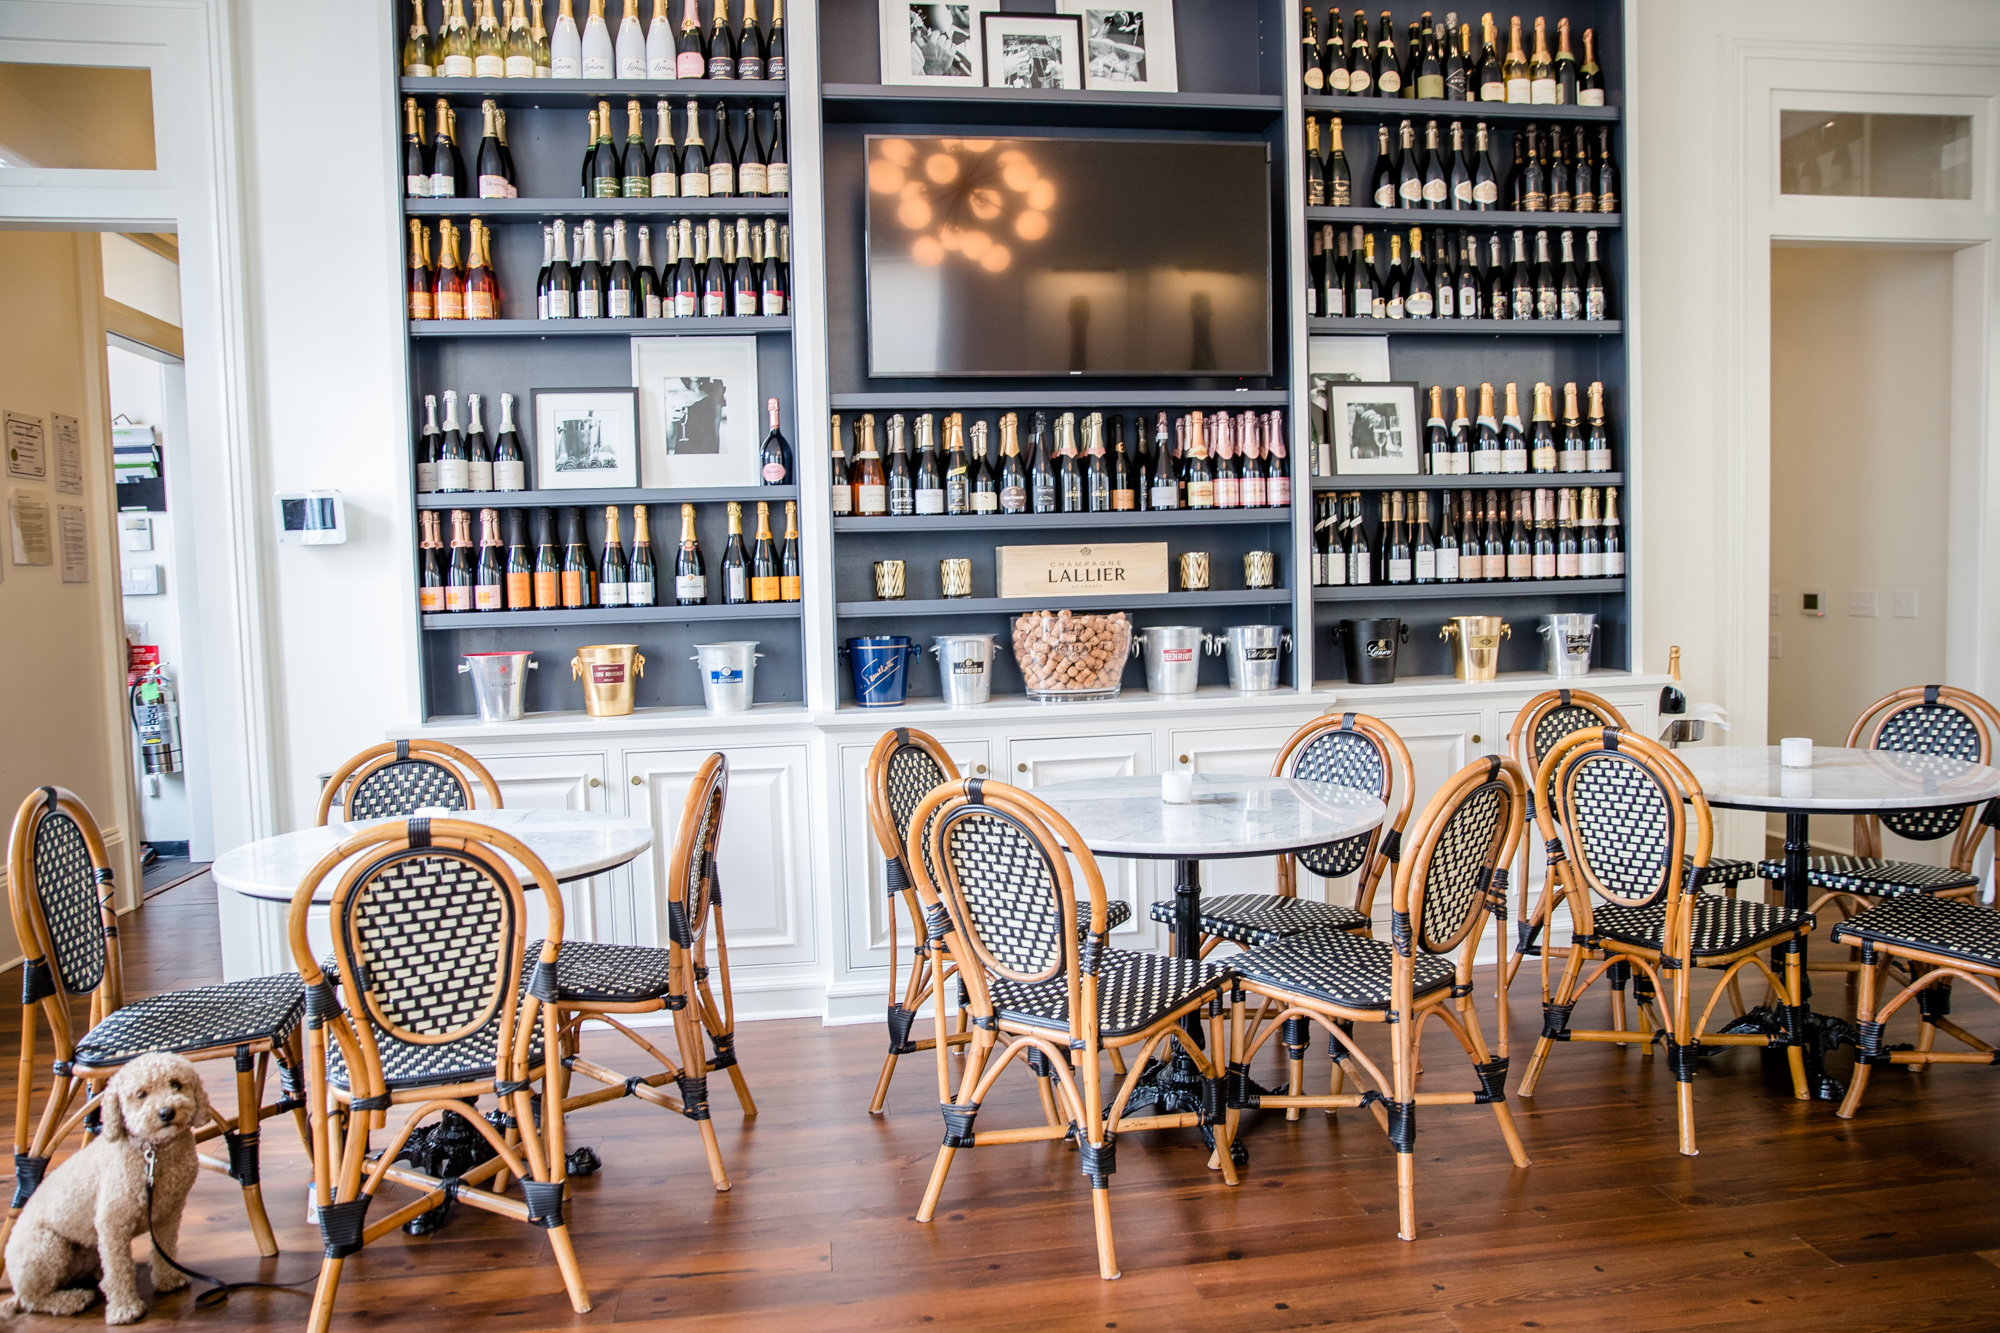 Effervescence champagne and wine bar interior